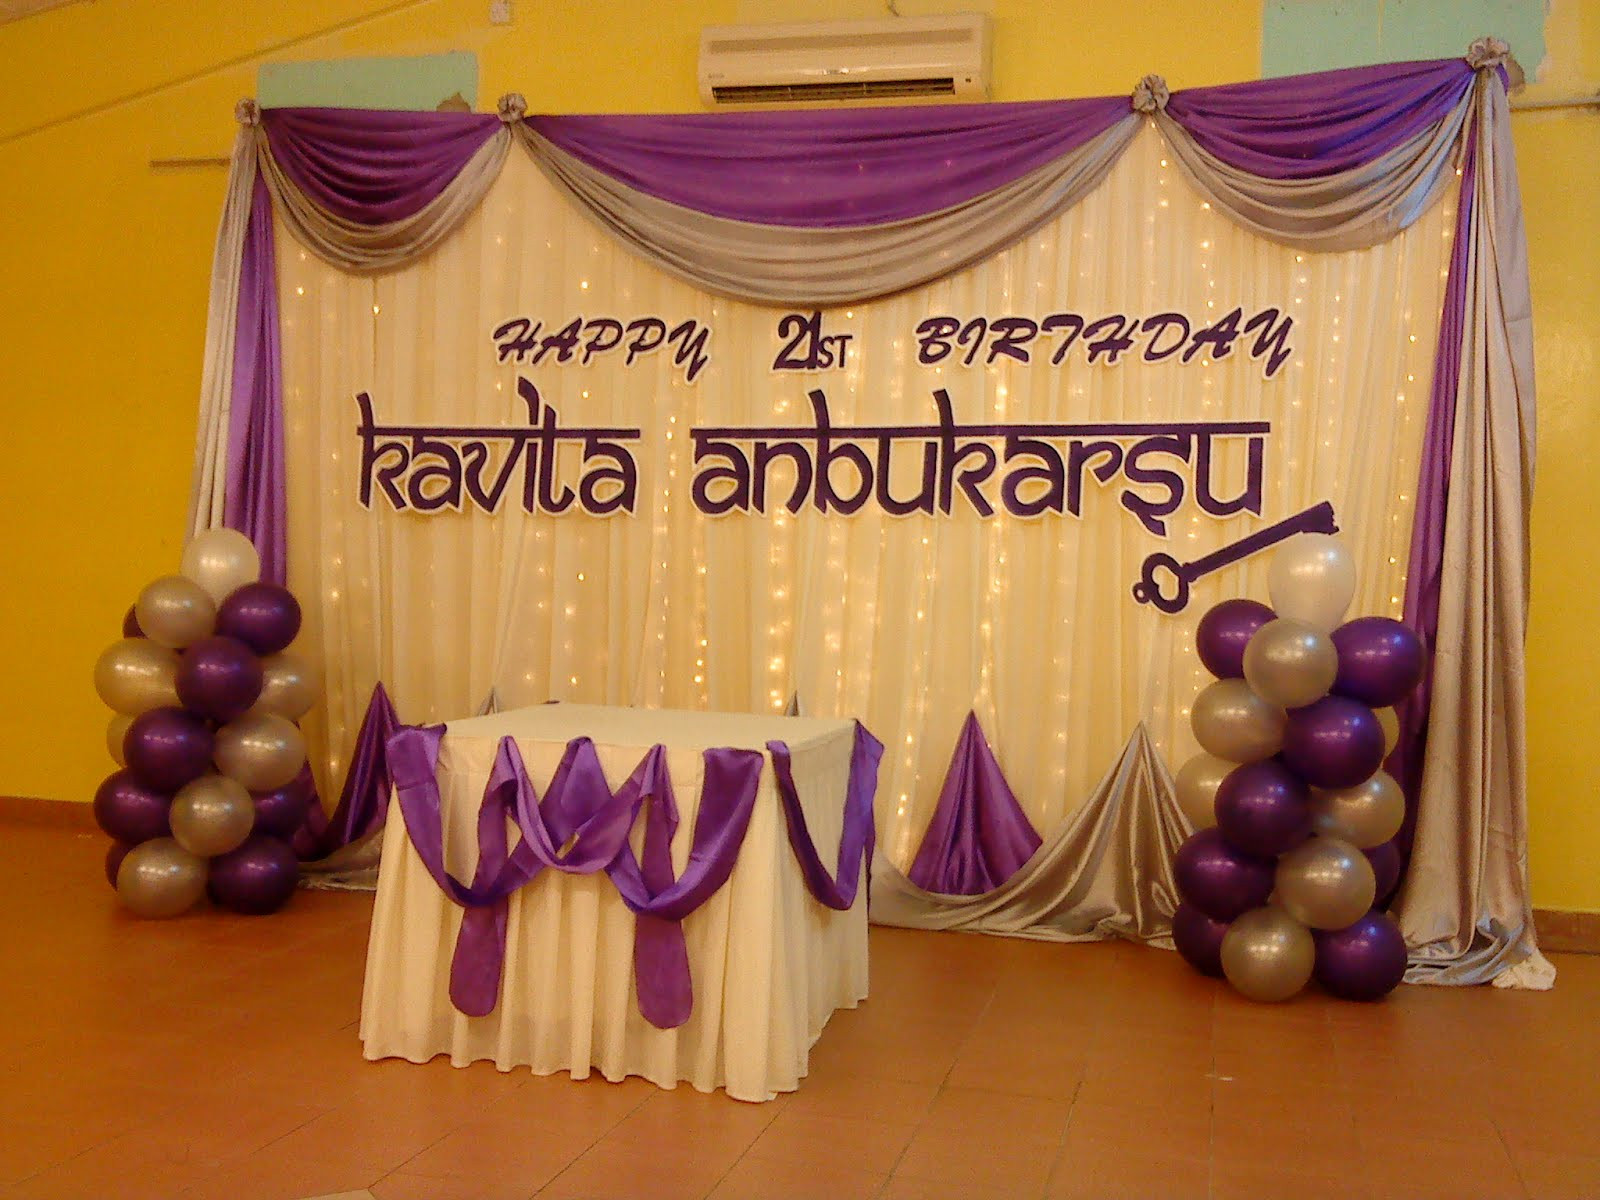 Best ideas about 21st Birthday Decorations . Save or Pin Raags Management Services 21st Birthday Deco purple & white Now.